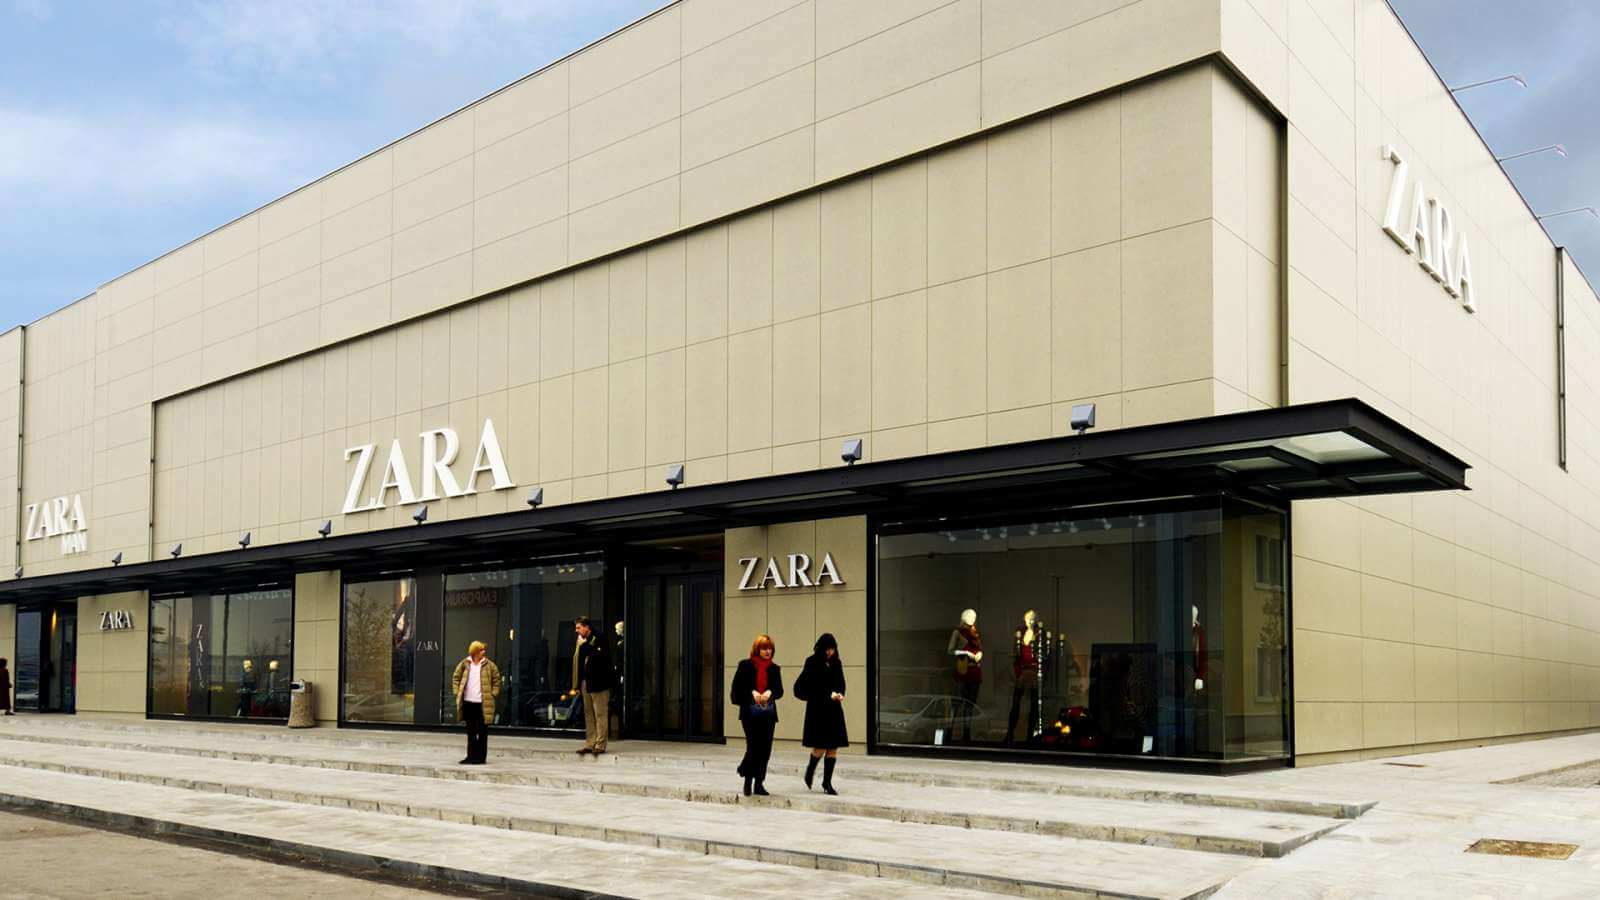 Swisspearl Cladding panels used for the exterior for Zara Fashion